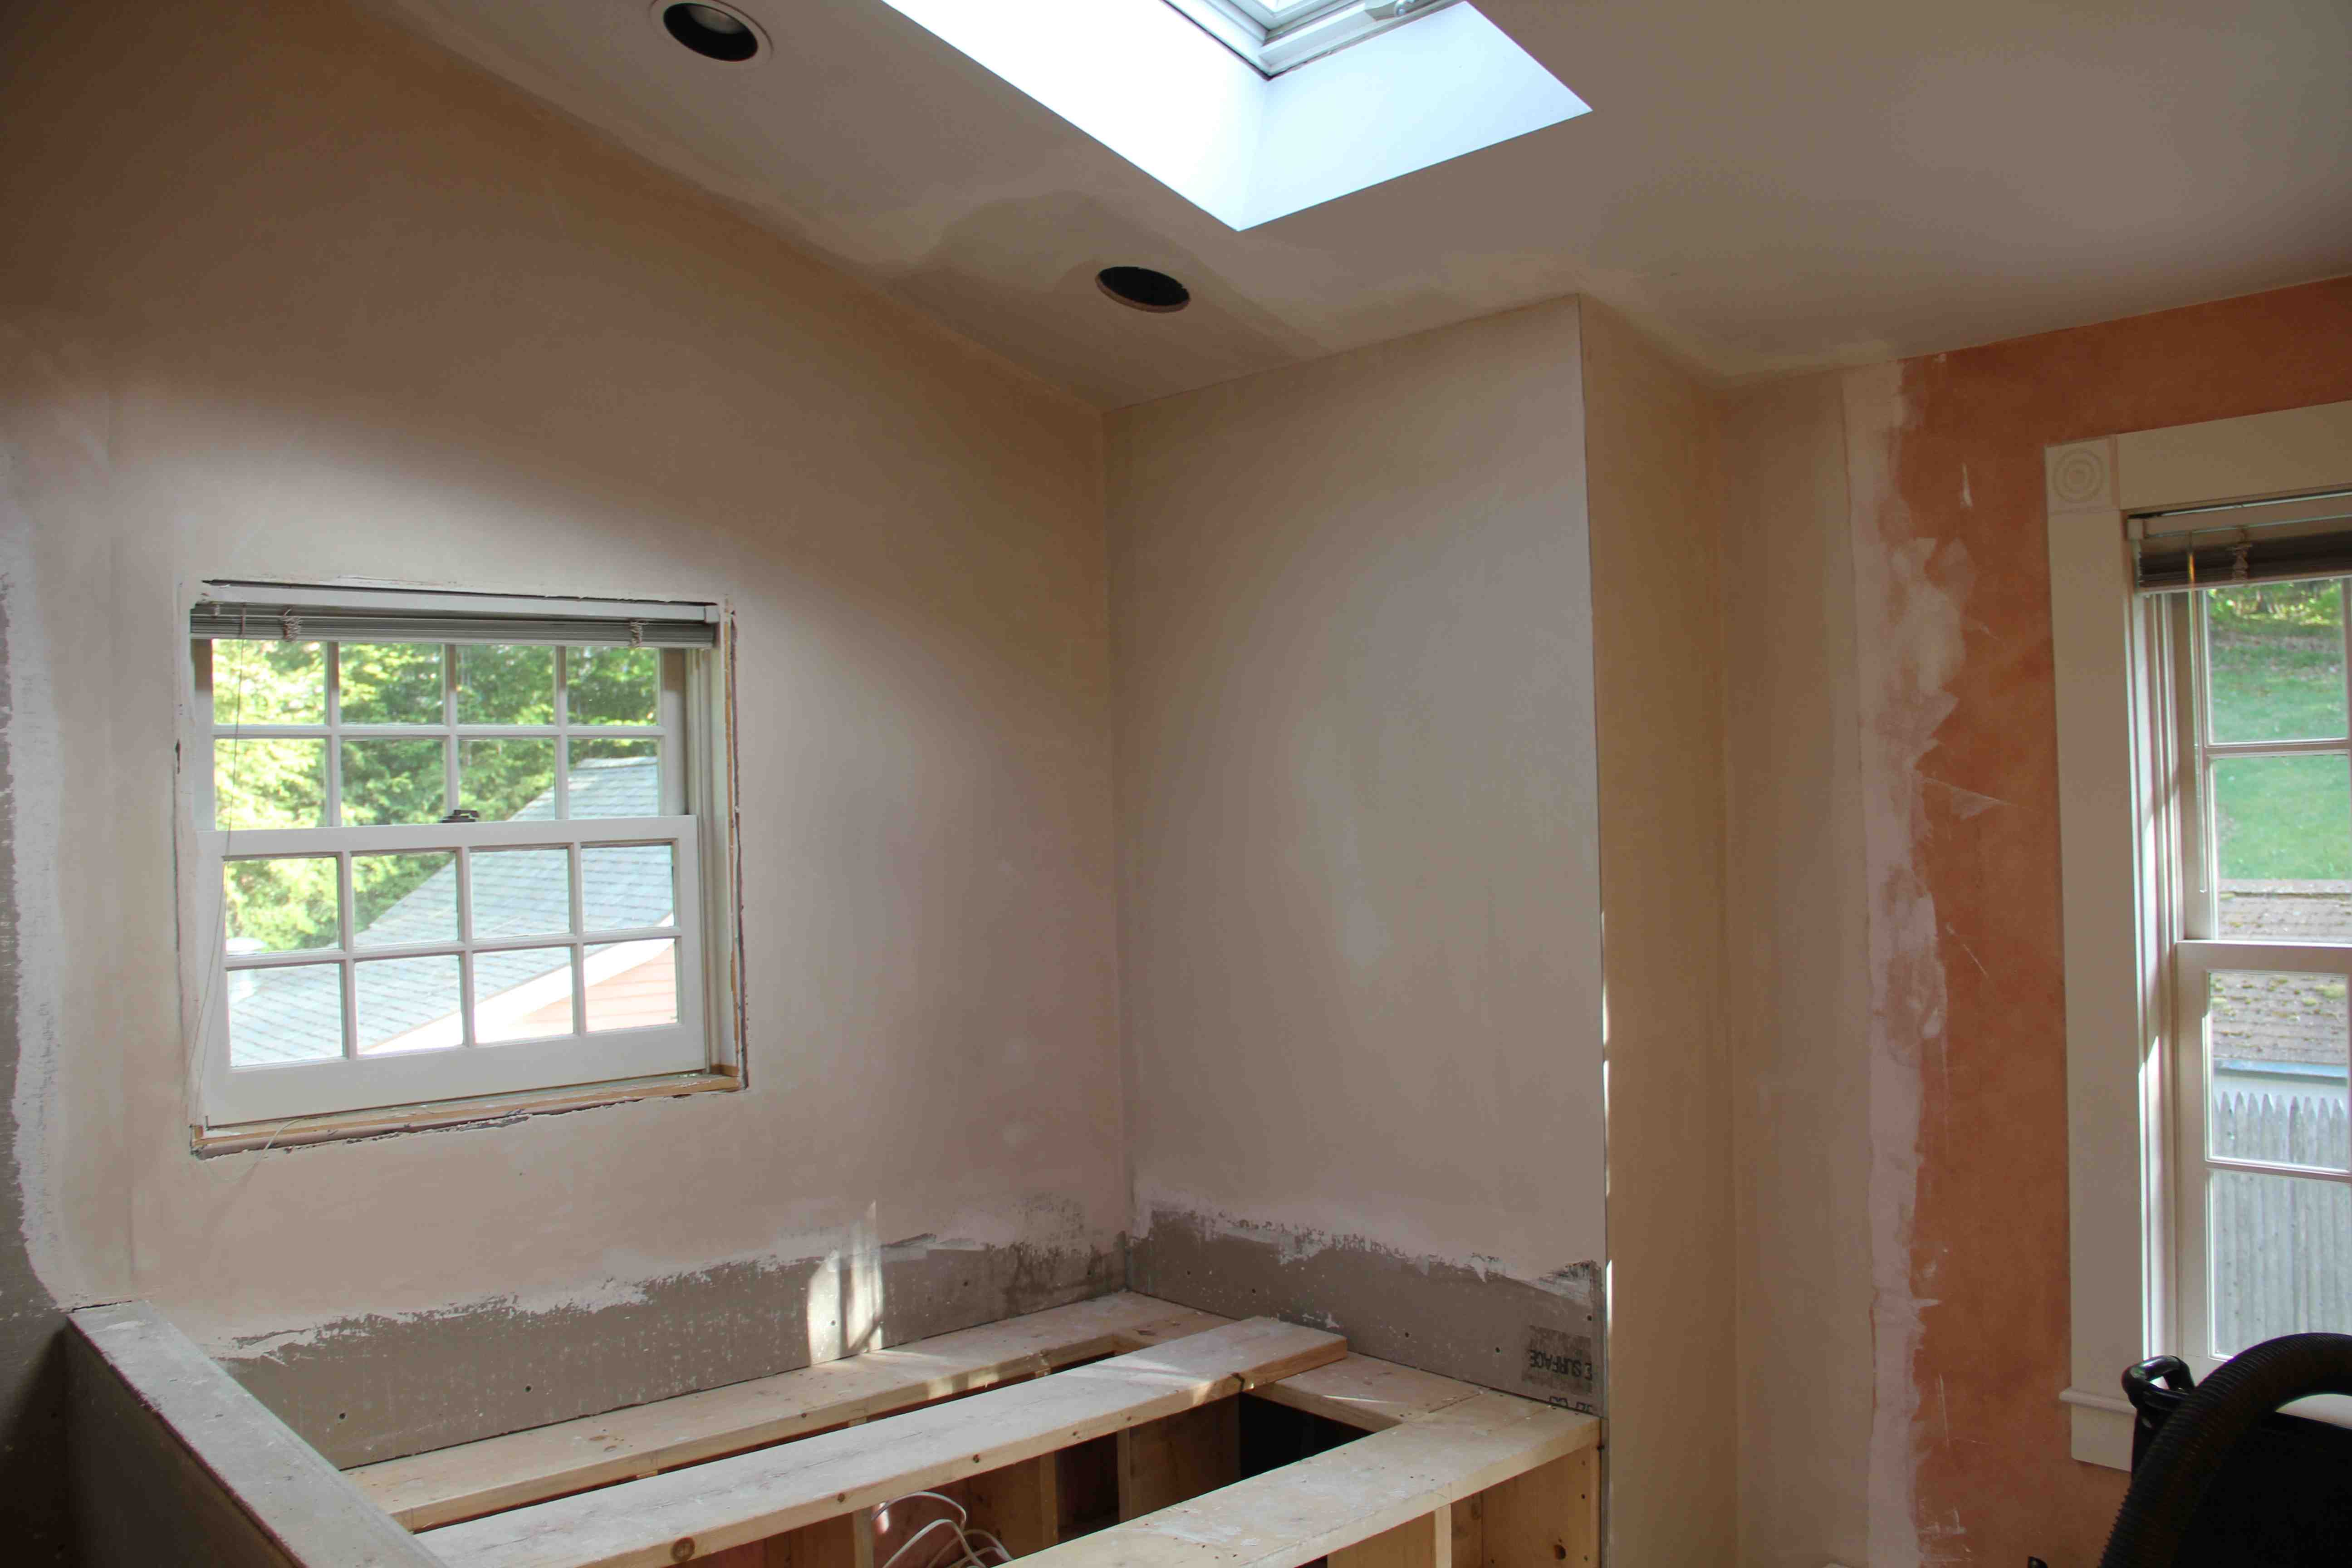 How To Prepare Plaster Walls For Painting